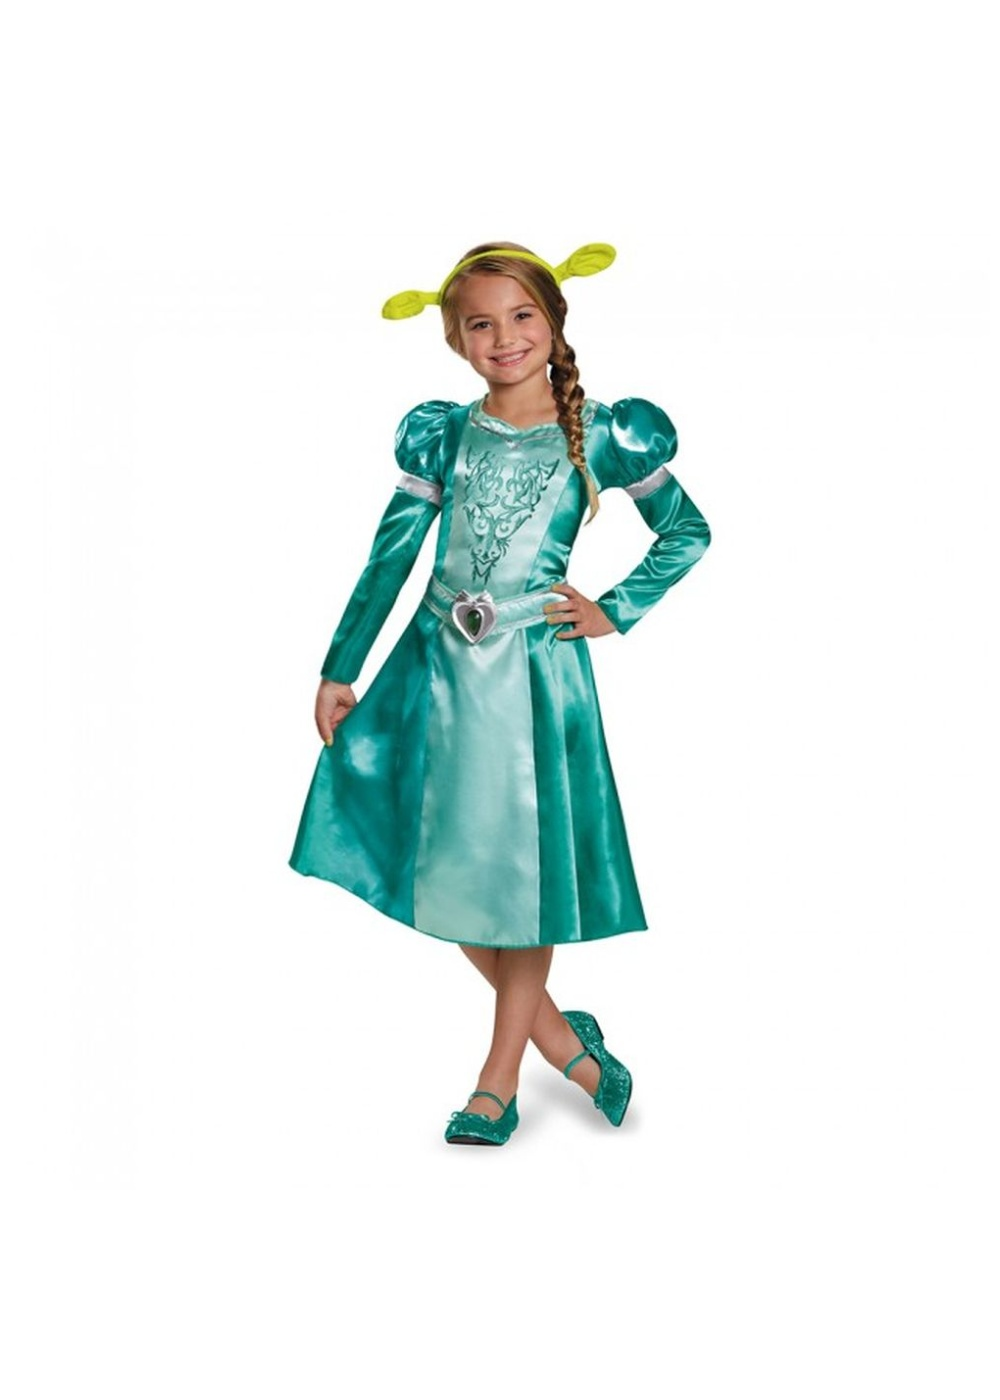 Dreamworks Princess Fiona Classic Girls Dress Costume - Princess Costumes  sc 1 st  Halloween Costumes & Dreamworks Princess Fiona Classic Girls Dress Costume - Princess ...